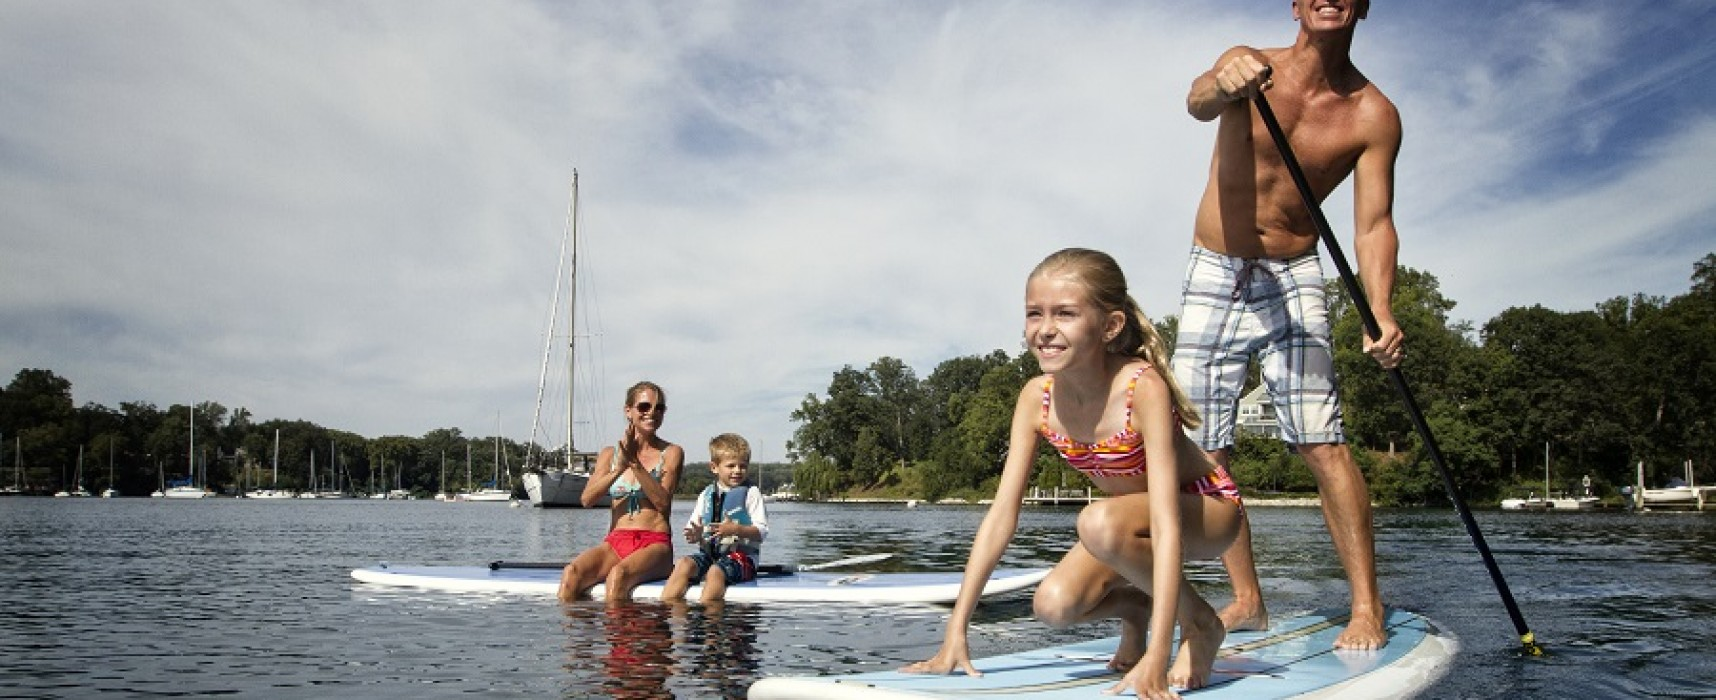 3 Tips for a Great Day on the Water